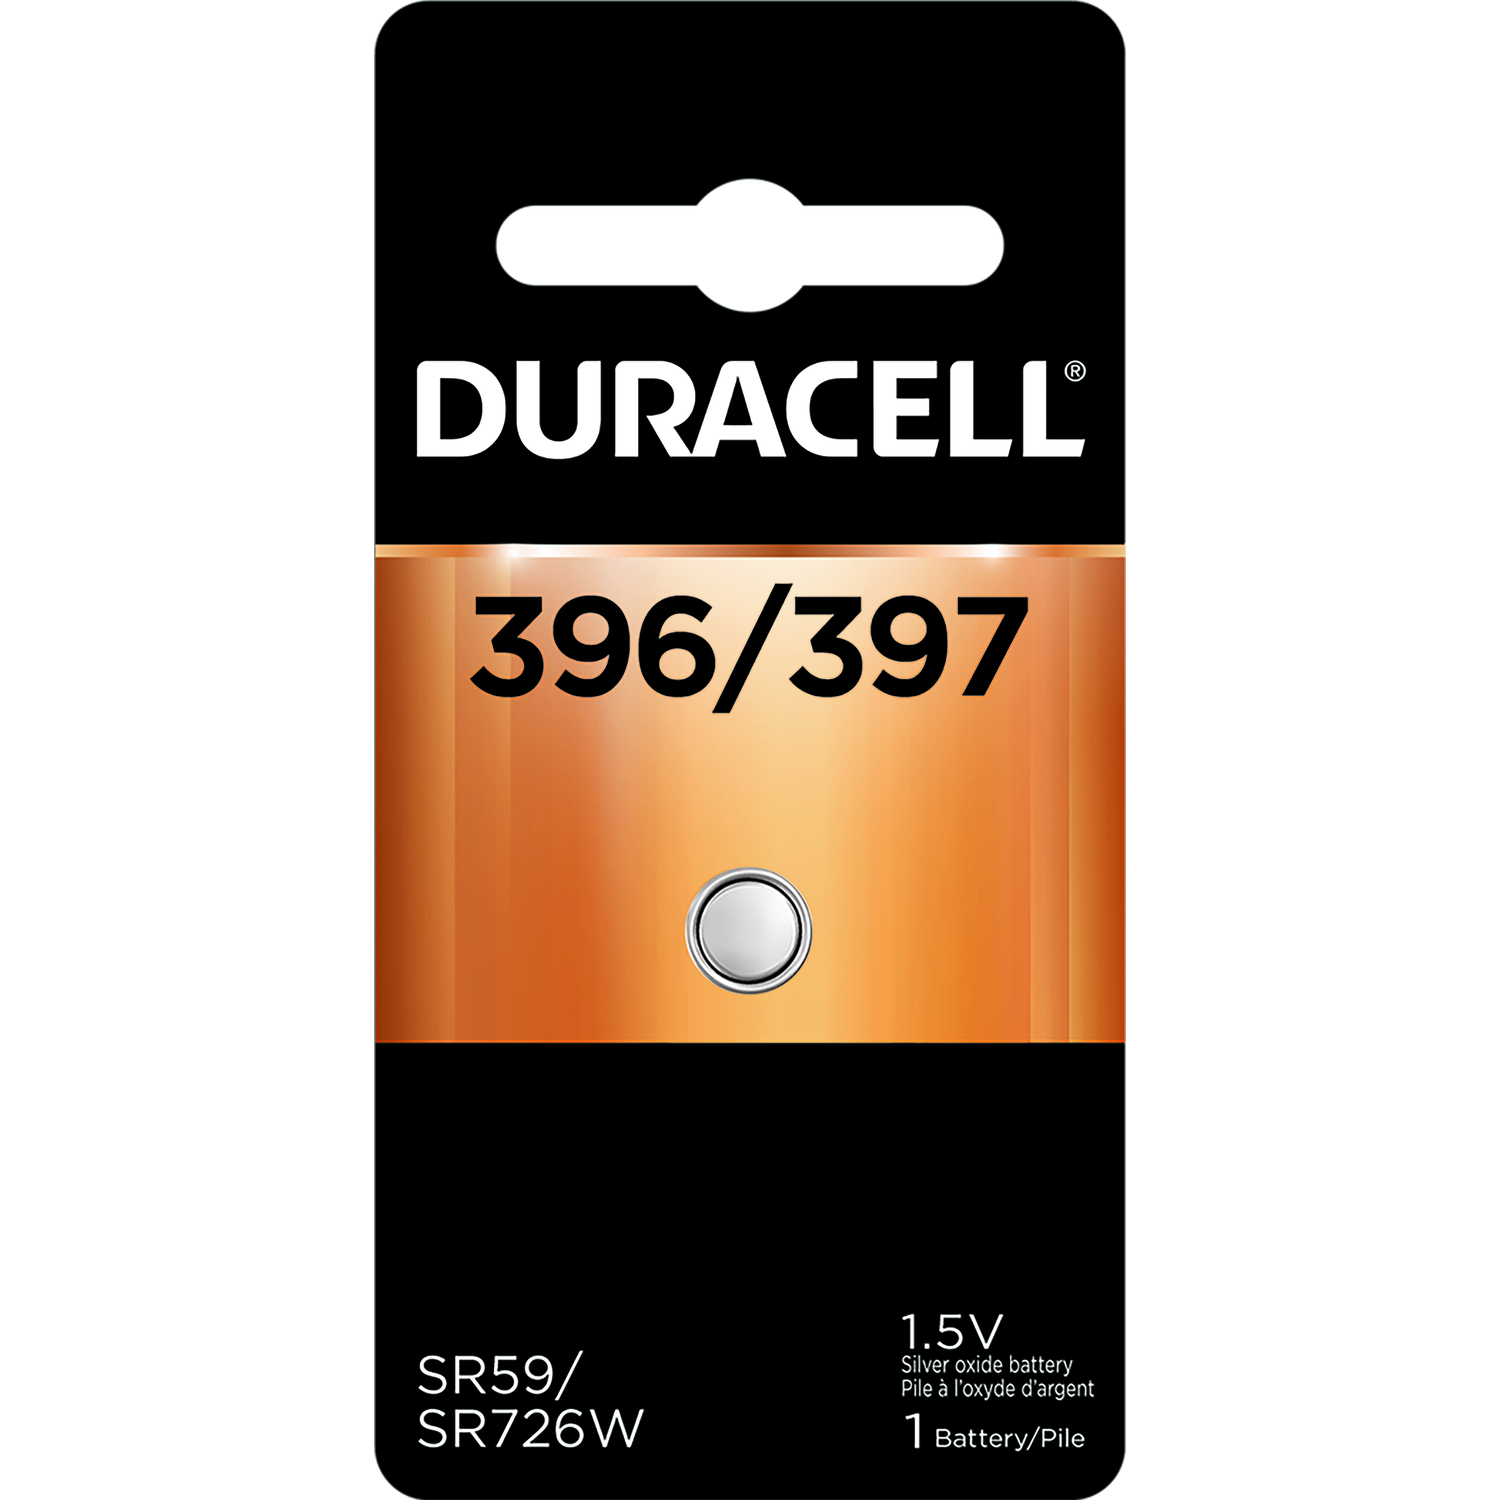 Duracell  396/397  Silver Oxide  Electronic/Watch Battery  1 pk